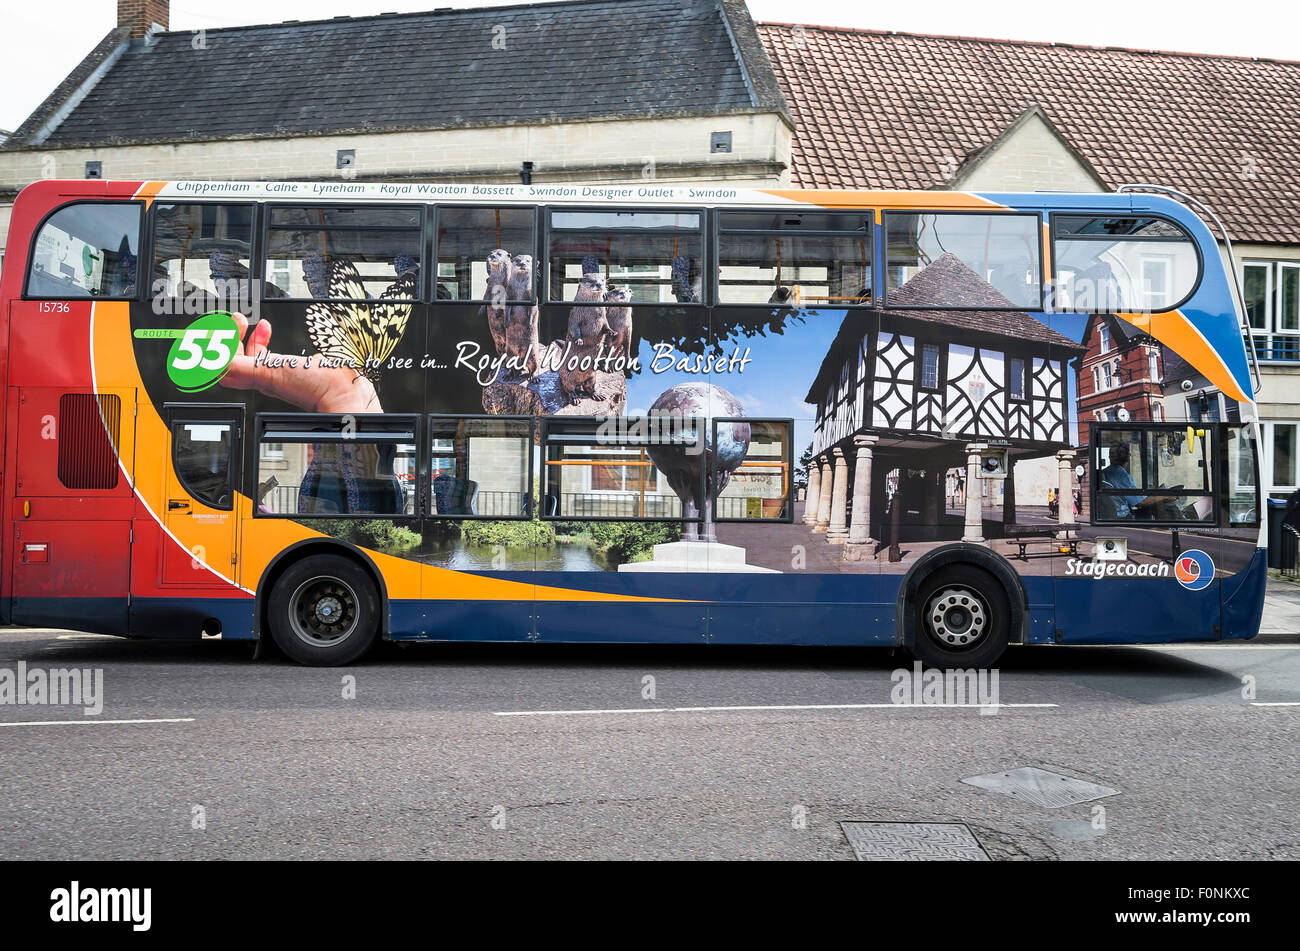 Roulement de bus Stagecoach illustrations picturales de villes desservies sur Route 55 Photo Stock